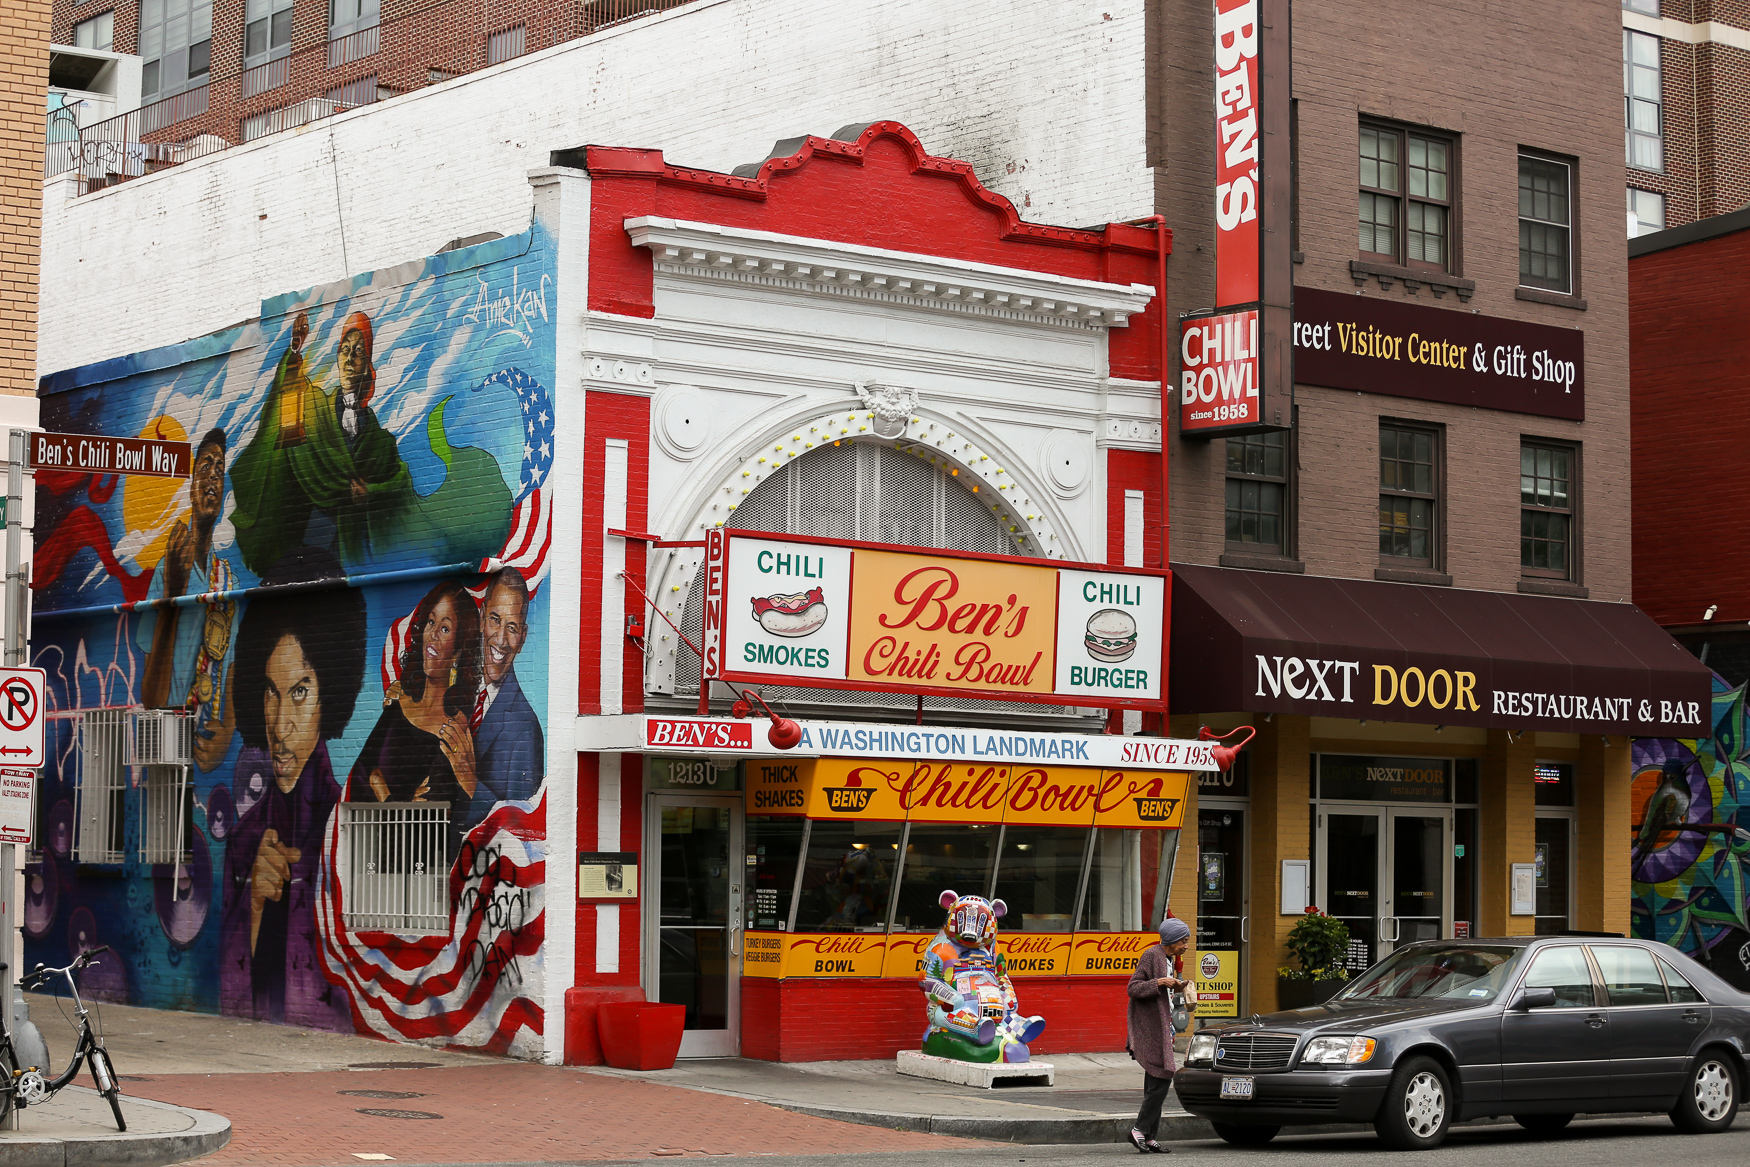 Fun fact! Ben's Chili Bowl was opened on August 22, 1958.{&nbsp;}<p></p>